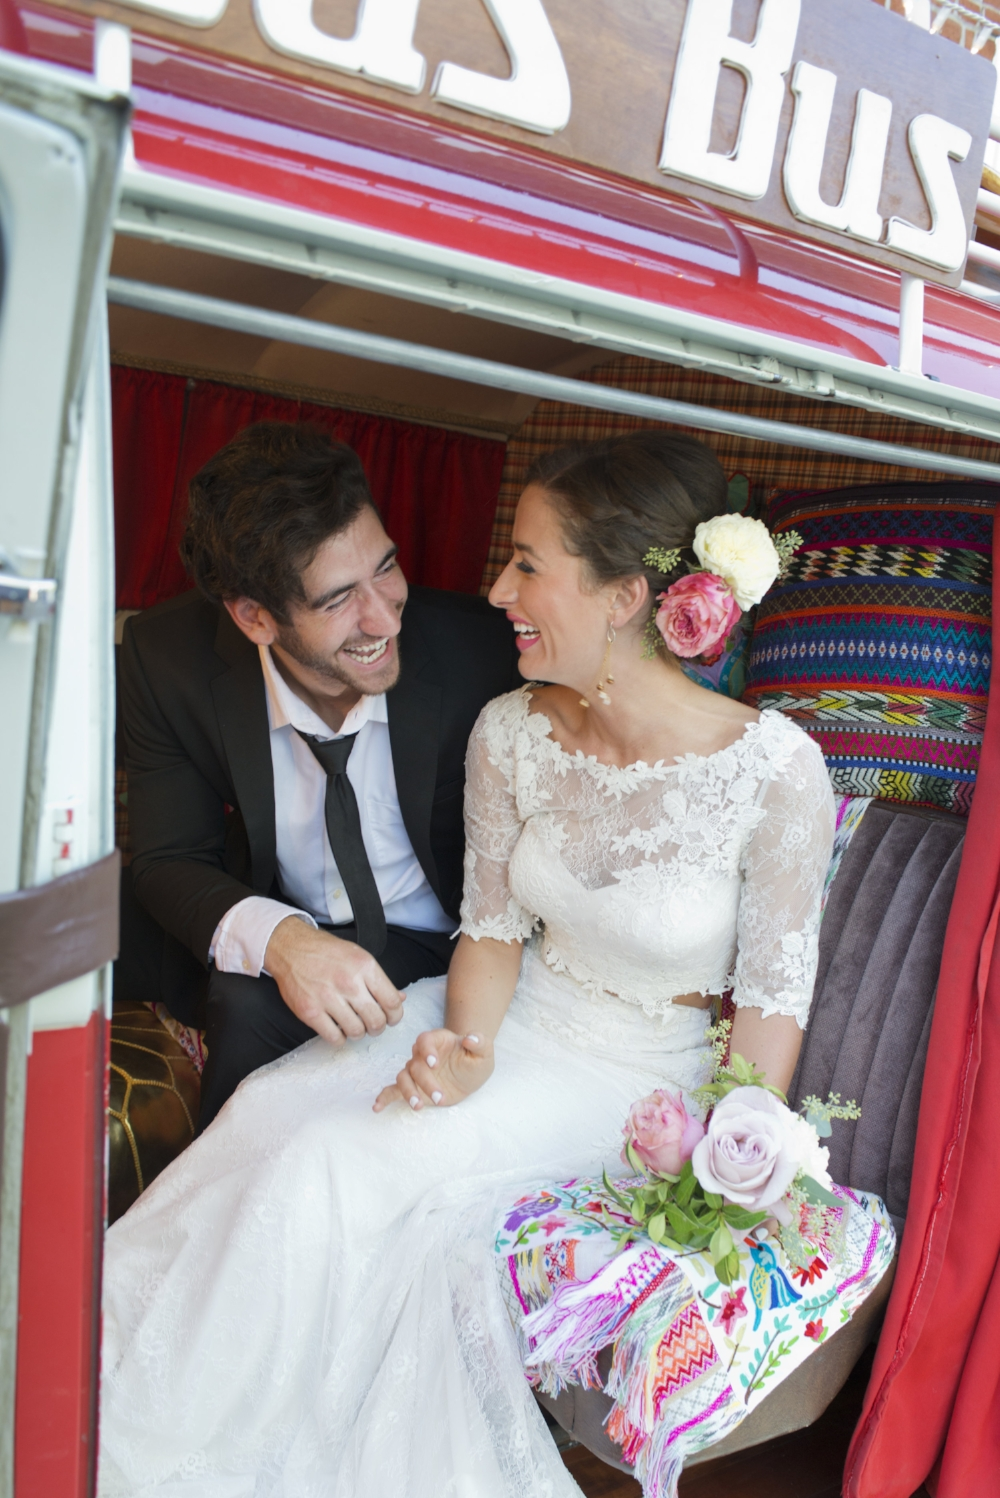 This couple was too much fun! Getting silly for their photo session in Das Bus. Photo by Christine Glebov.